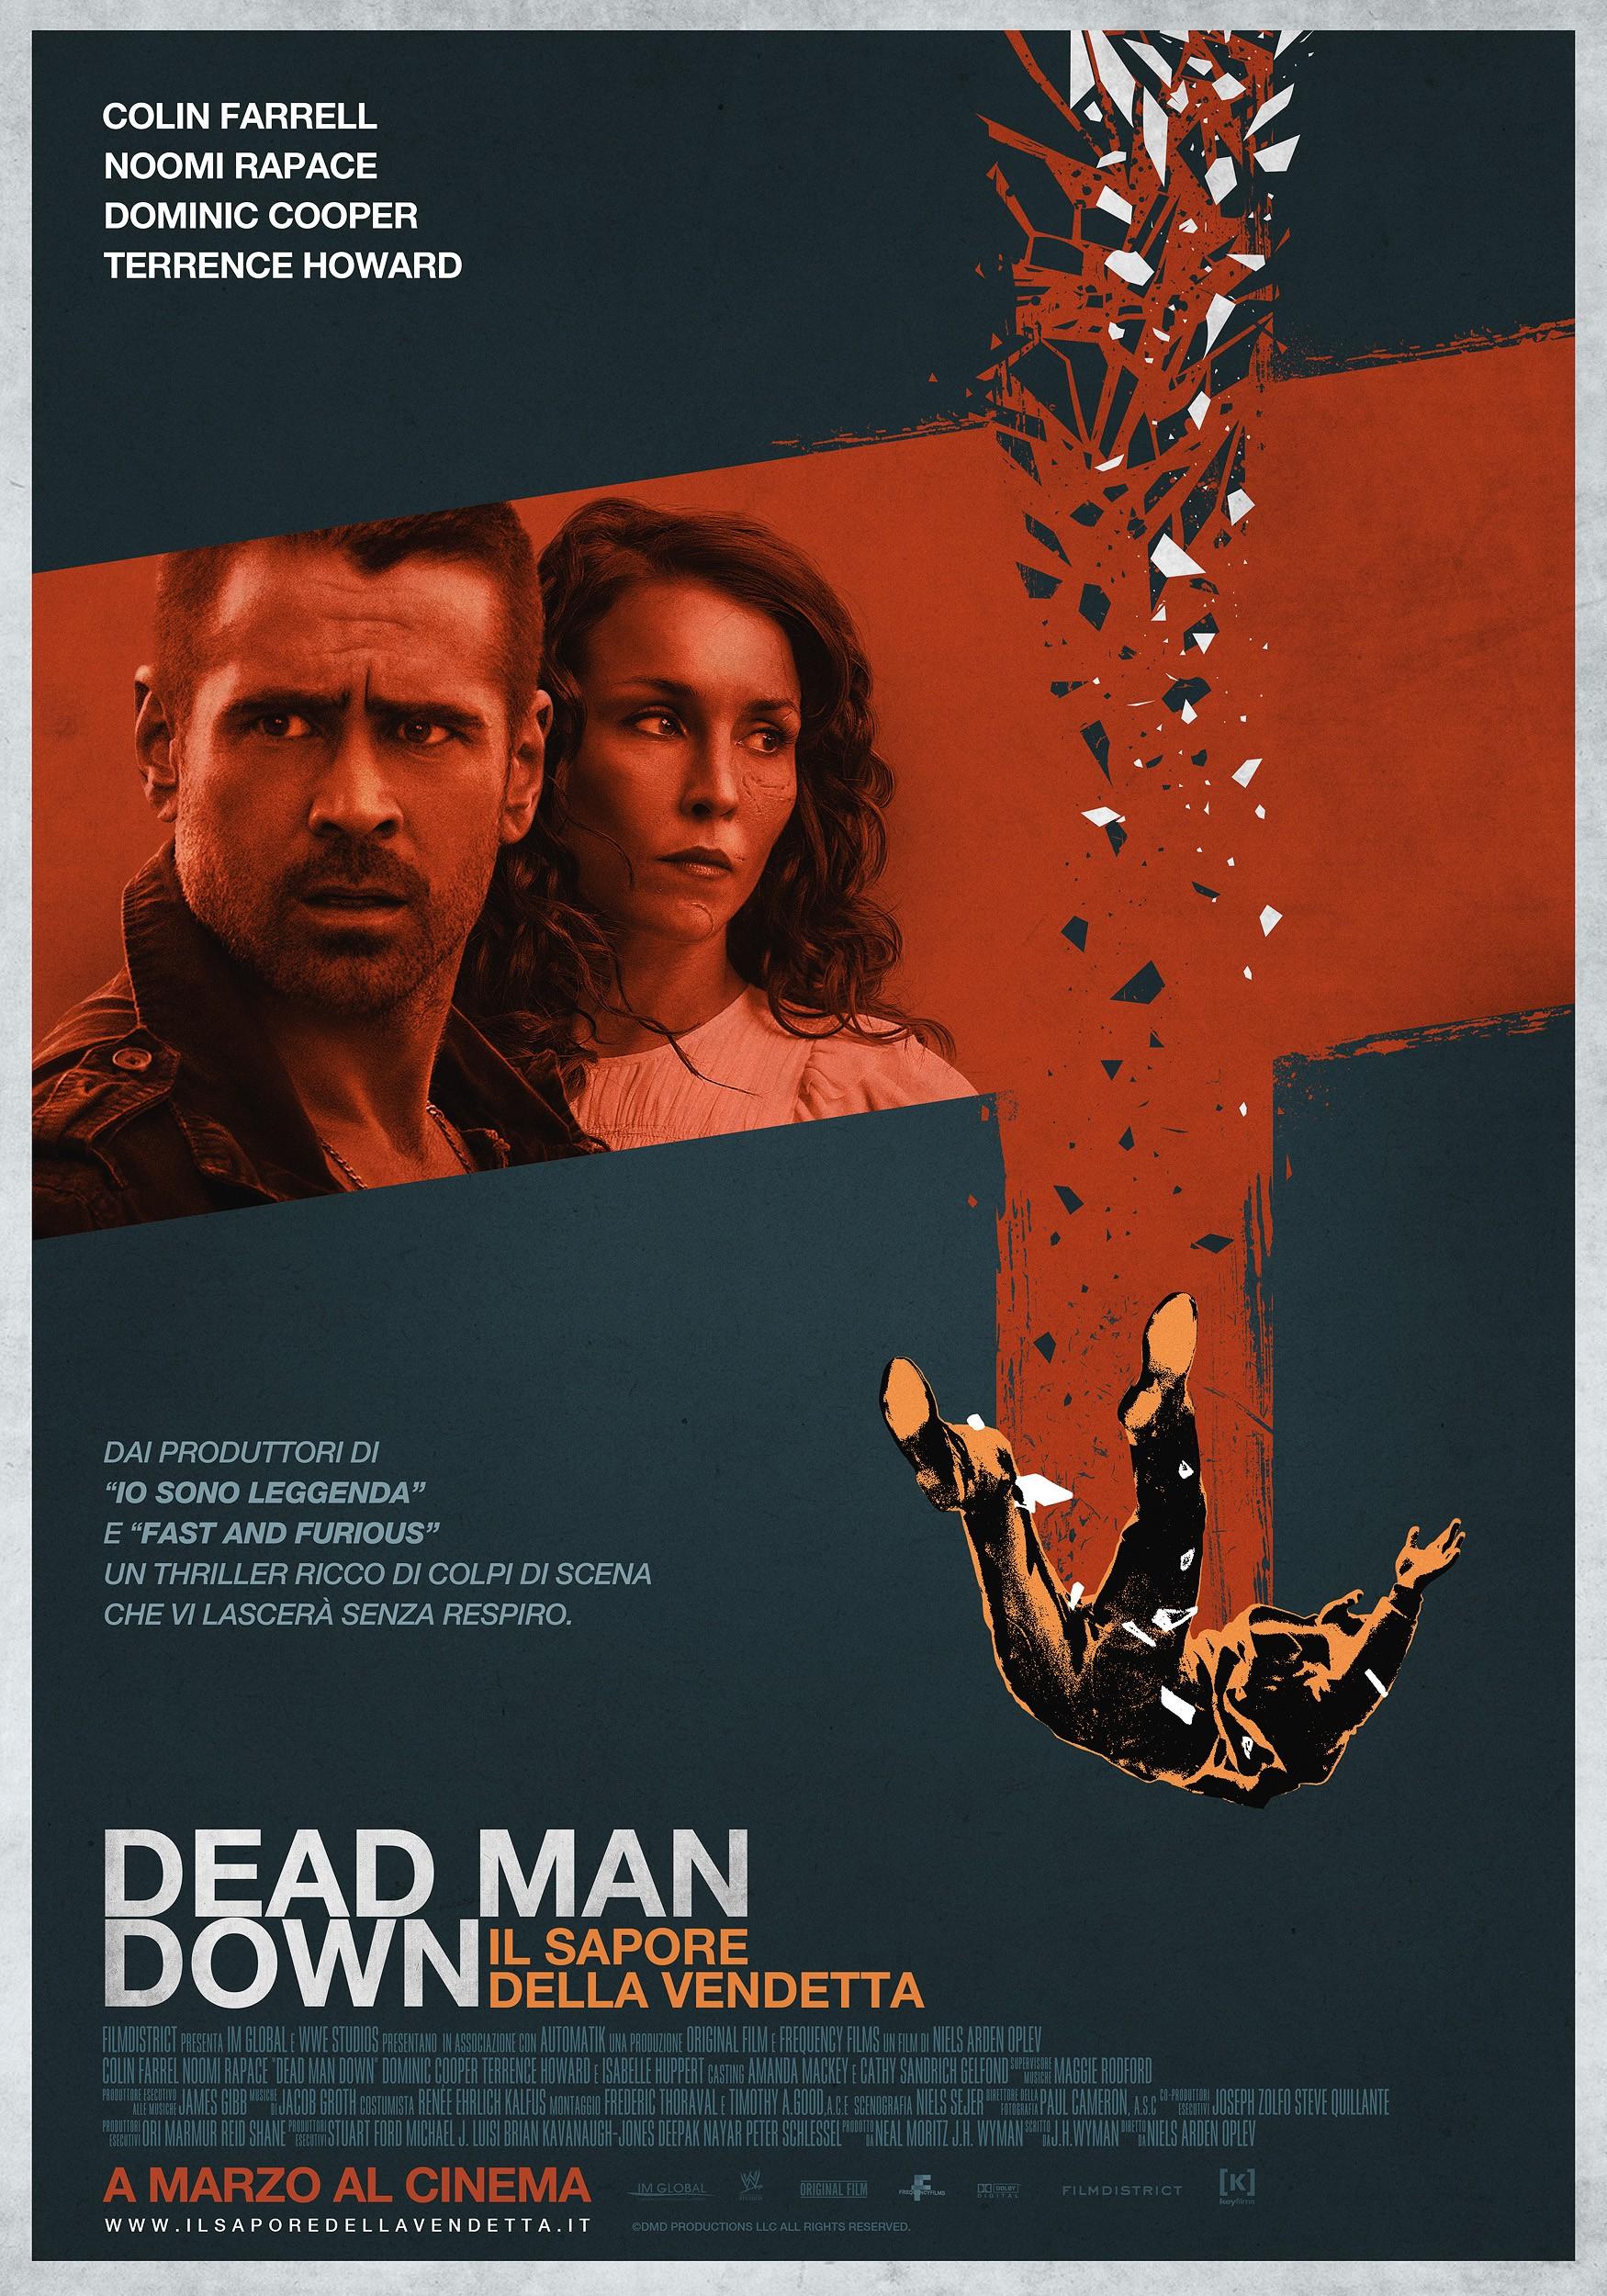 Dead Man Down - Poster - 003